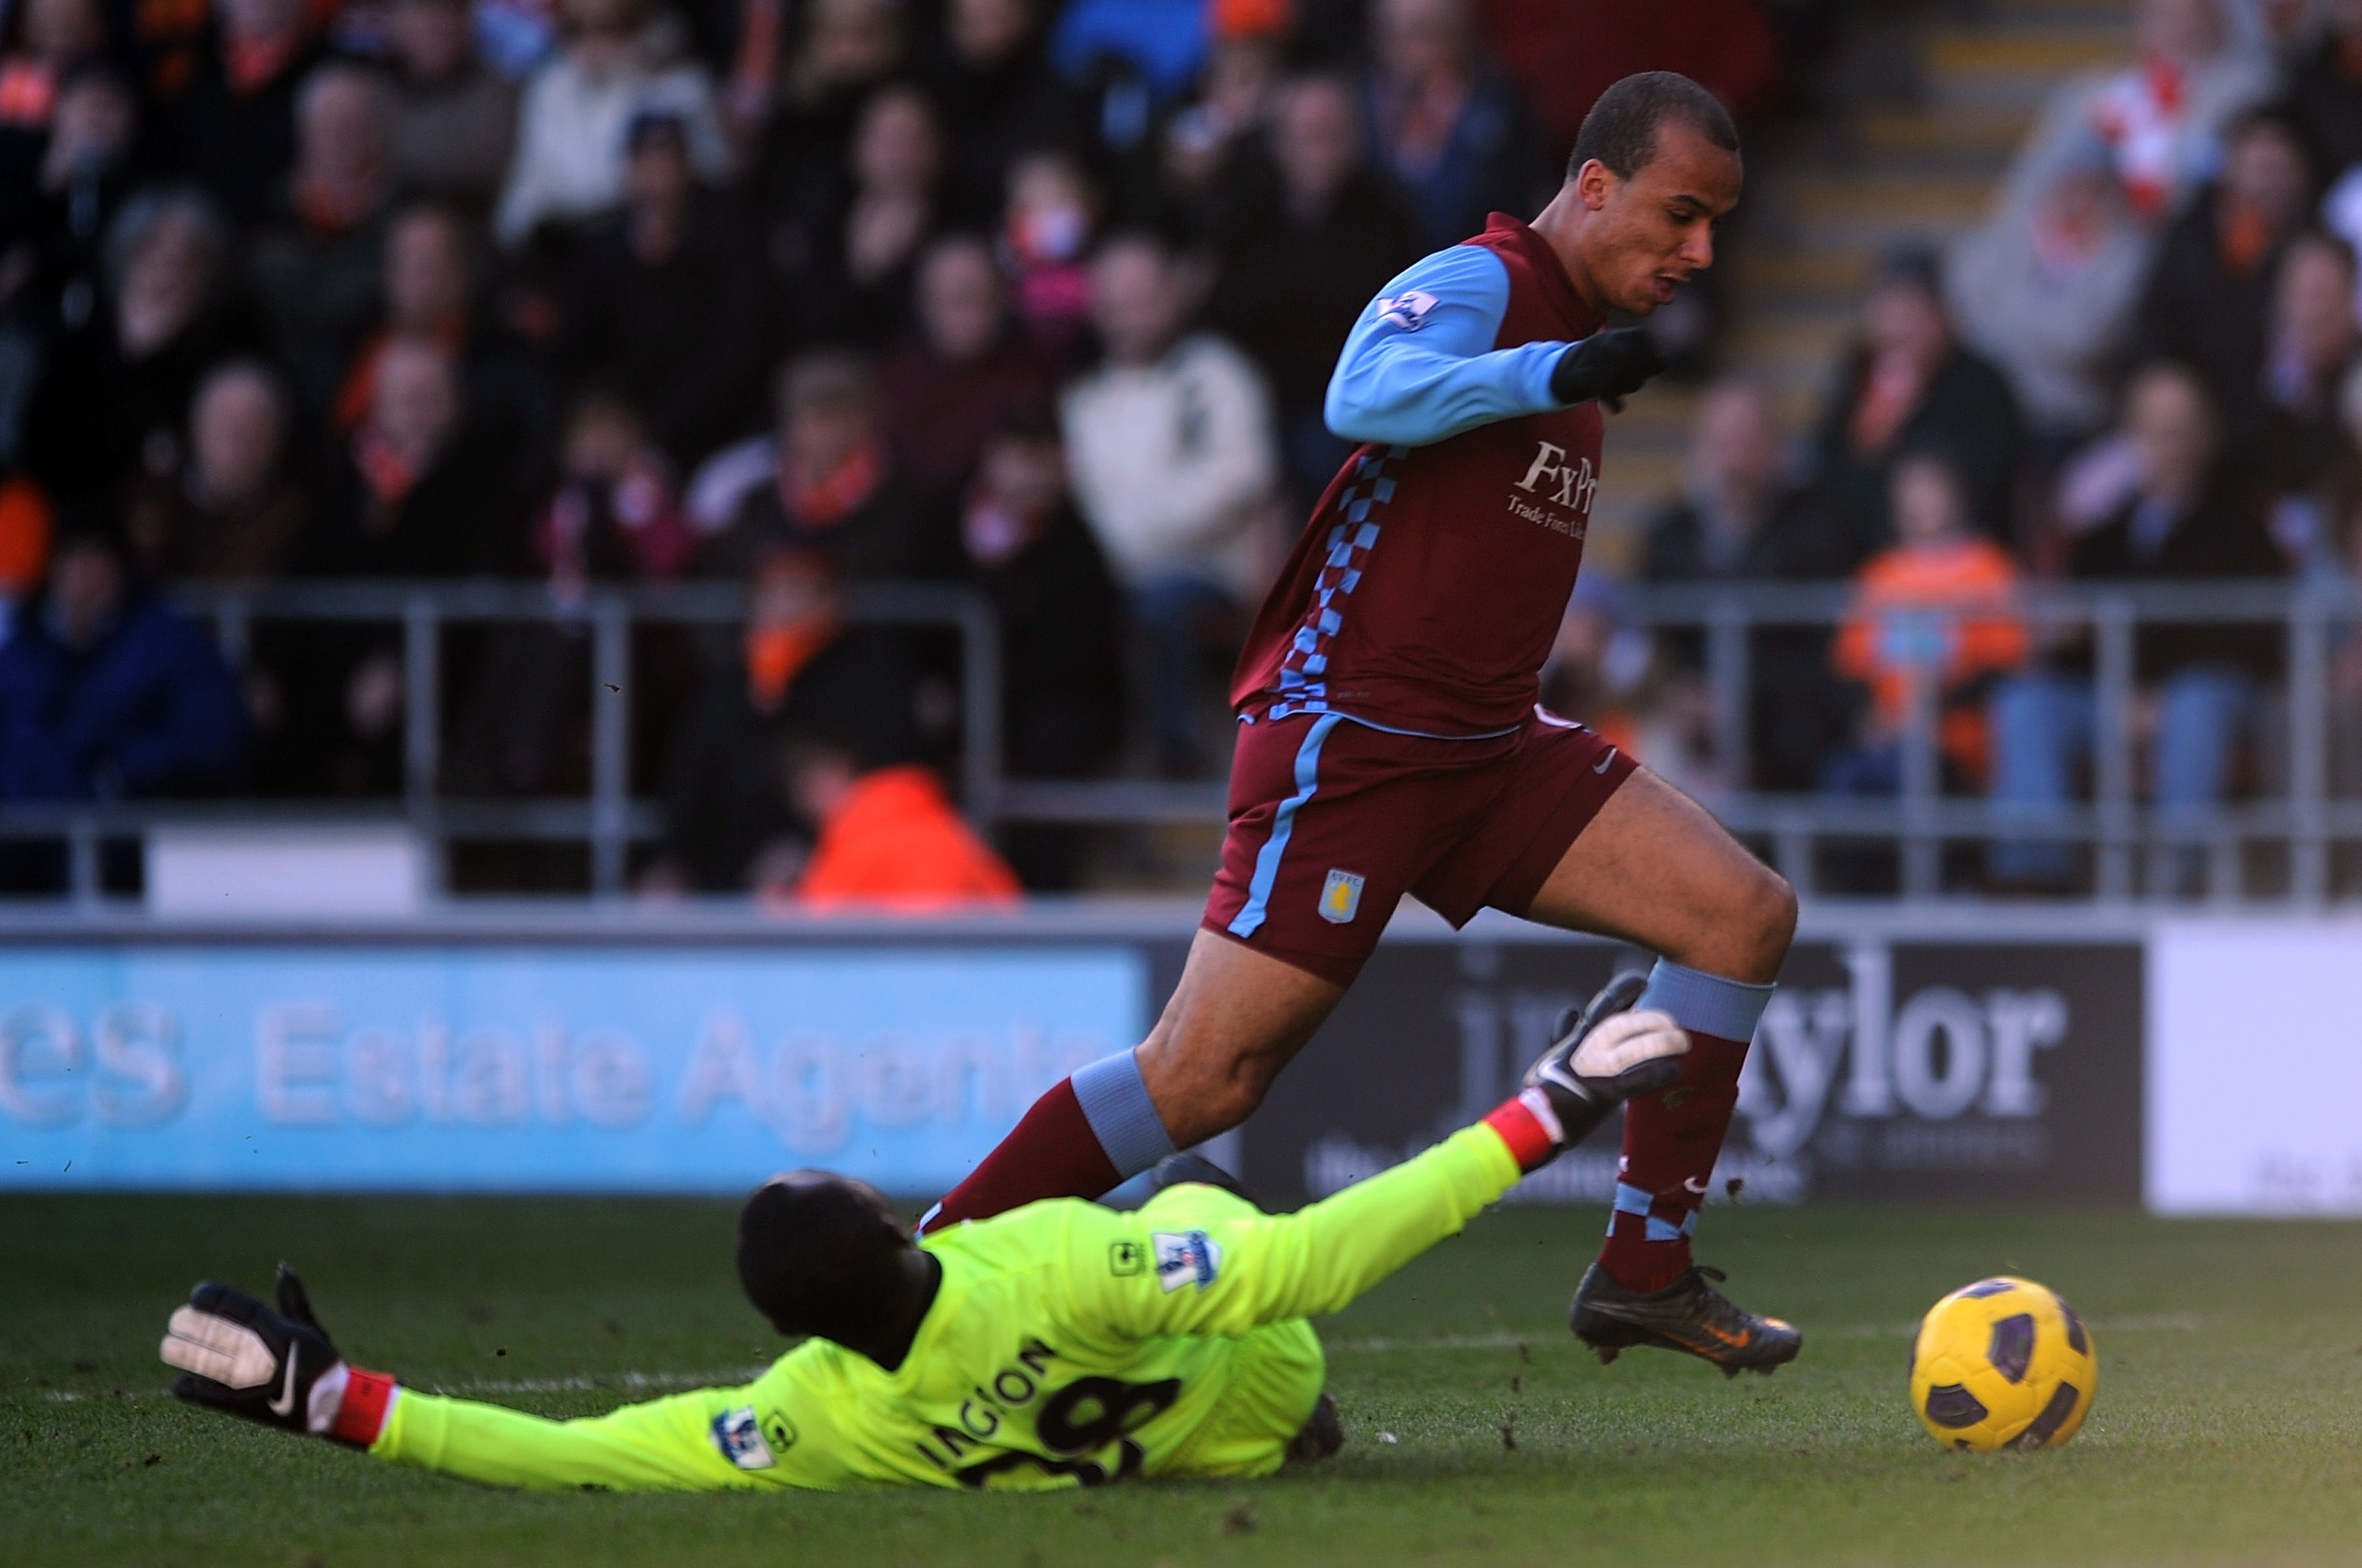 BLACKPOOL, ENGLAND - FEBRUARY 12:  Gabriel Agbonlahor of Aston Villa rounds Richard Kingson of Blackpool before scoring the opening goal during the Barclays Premier League match between Blackpool and Aston Villa at Bloomfield Road on February 12, 2011 in